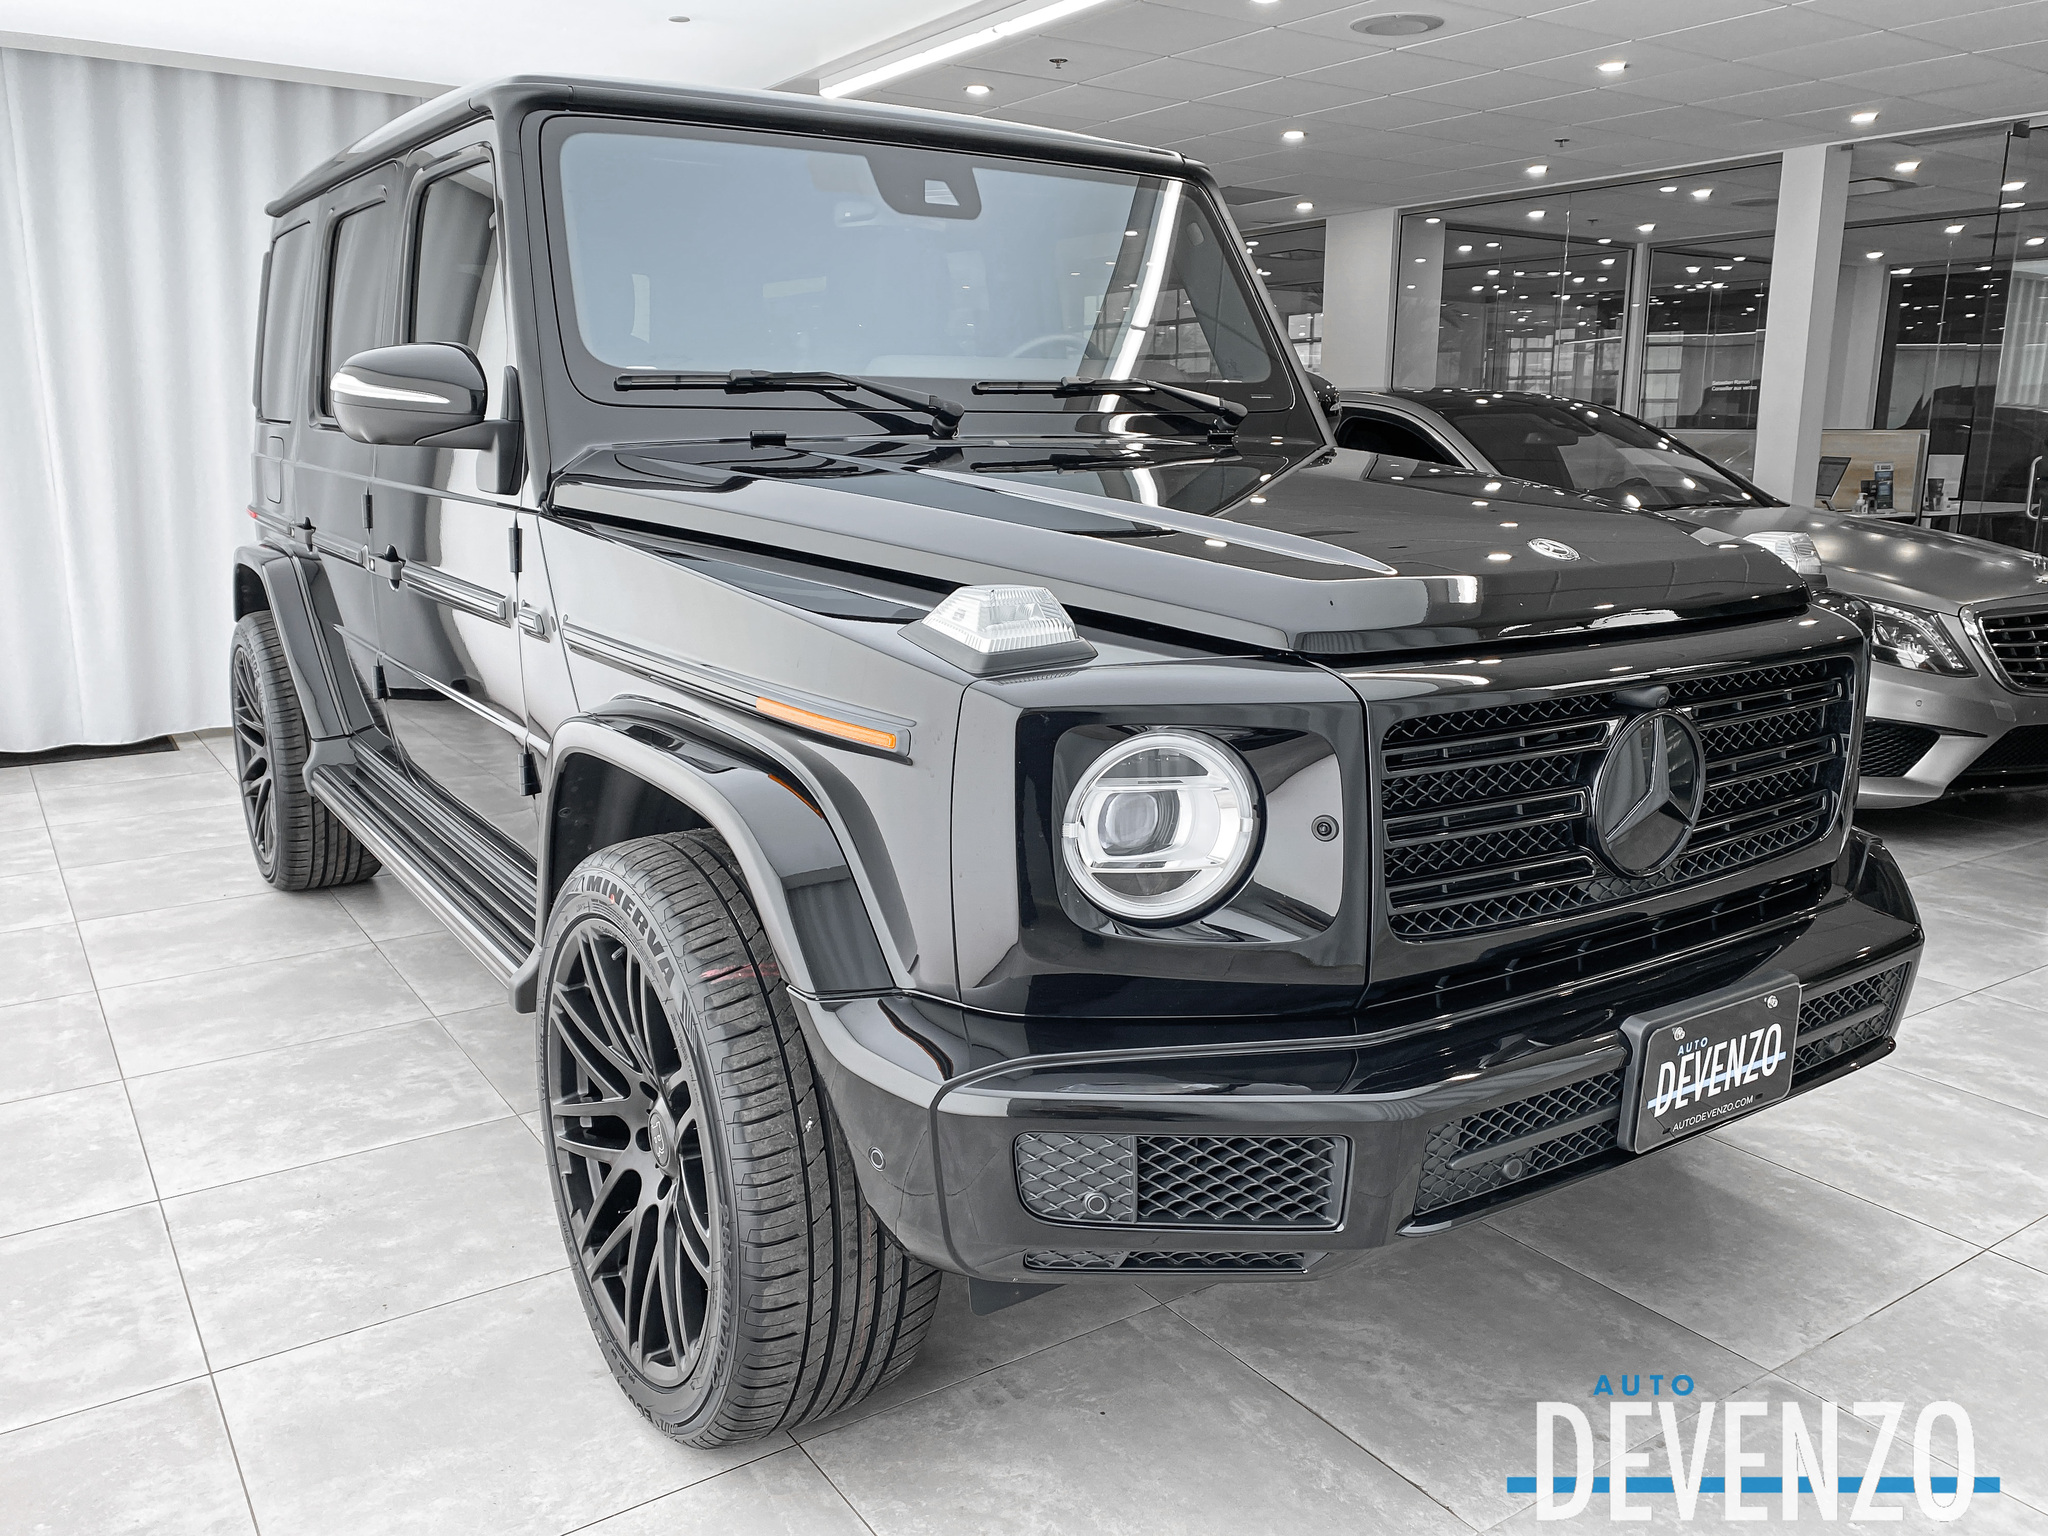 2020 Mercedes-Benz G-Class G550 4MATIC AMG NIGHT PACKAGE complet